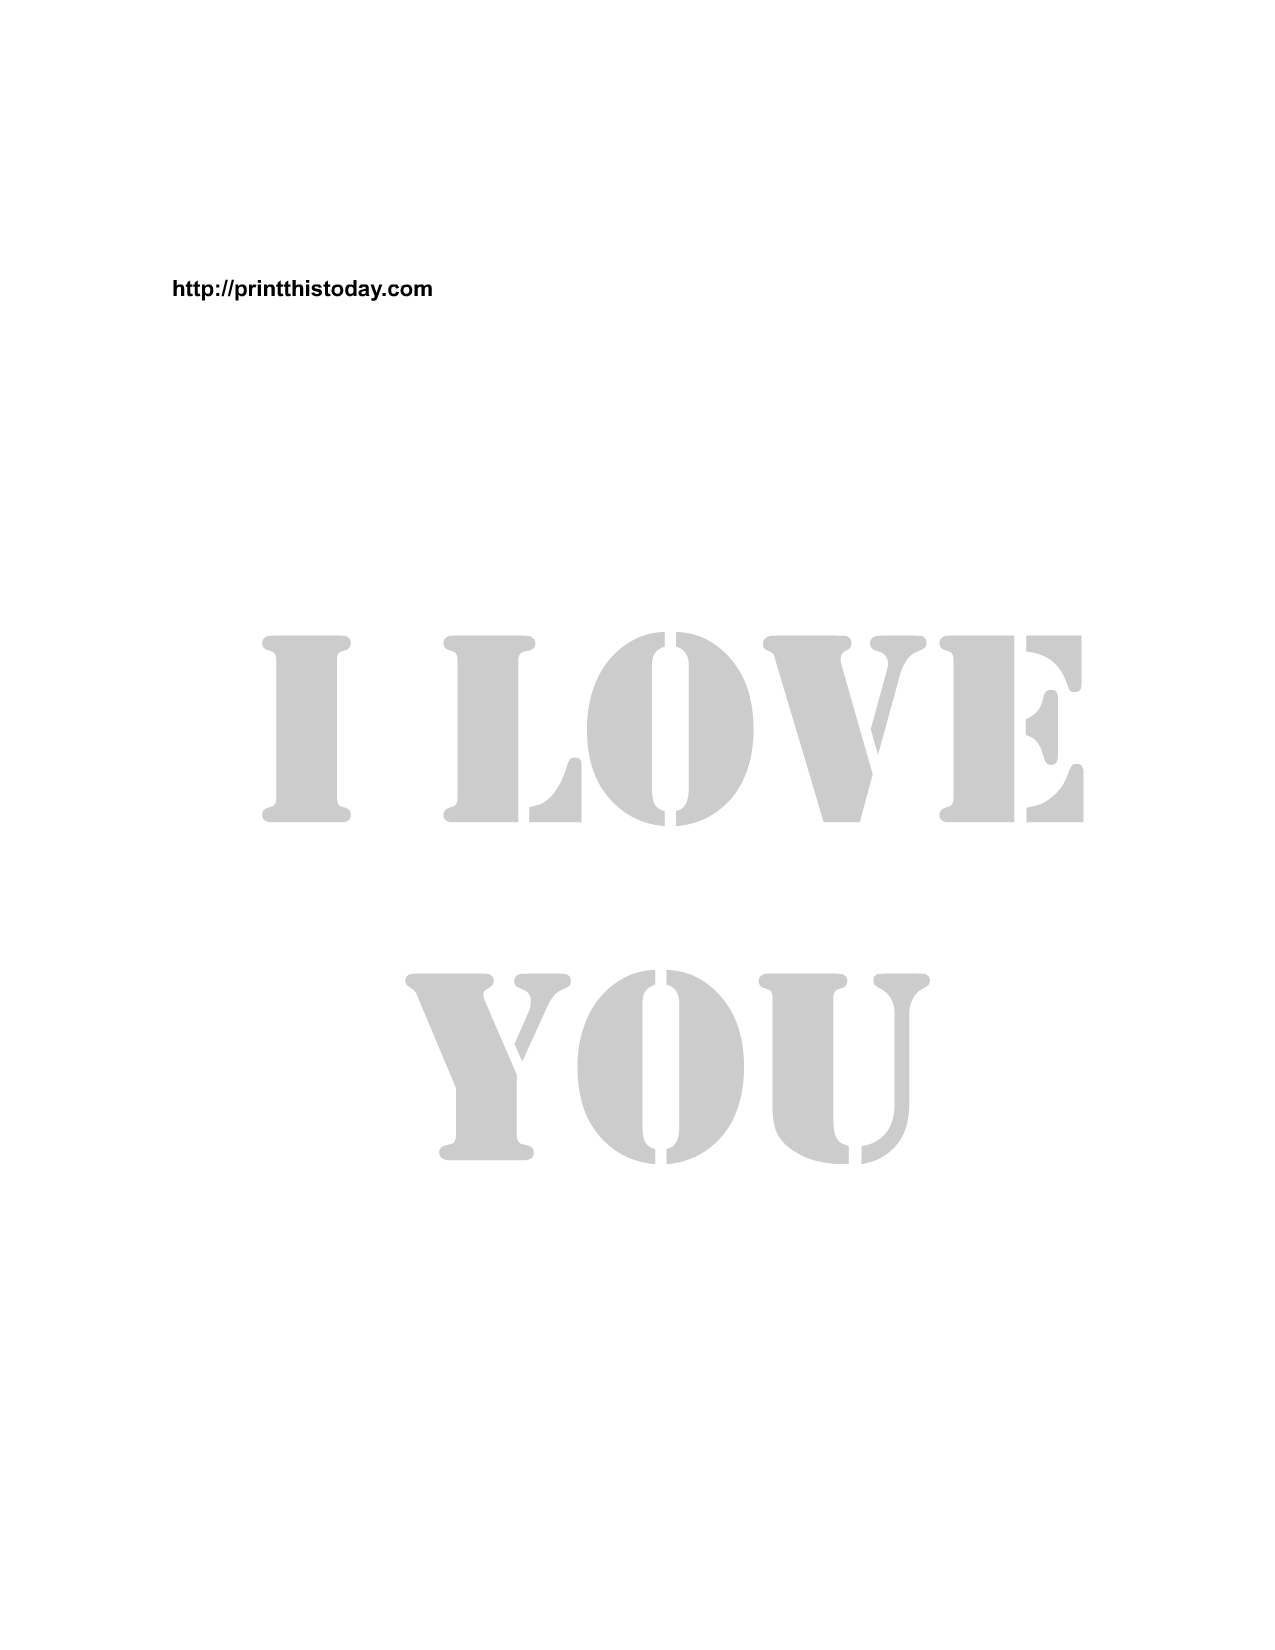 photo regarding I Love You Printable called Absolutely free Printable Get pleasure from Stencils